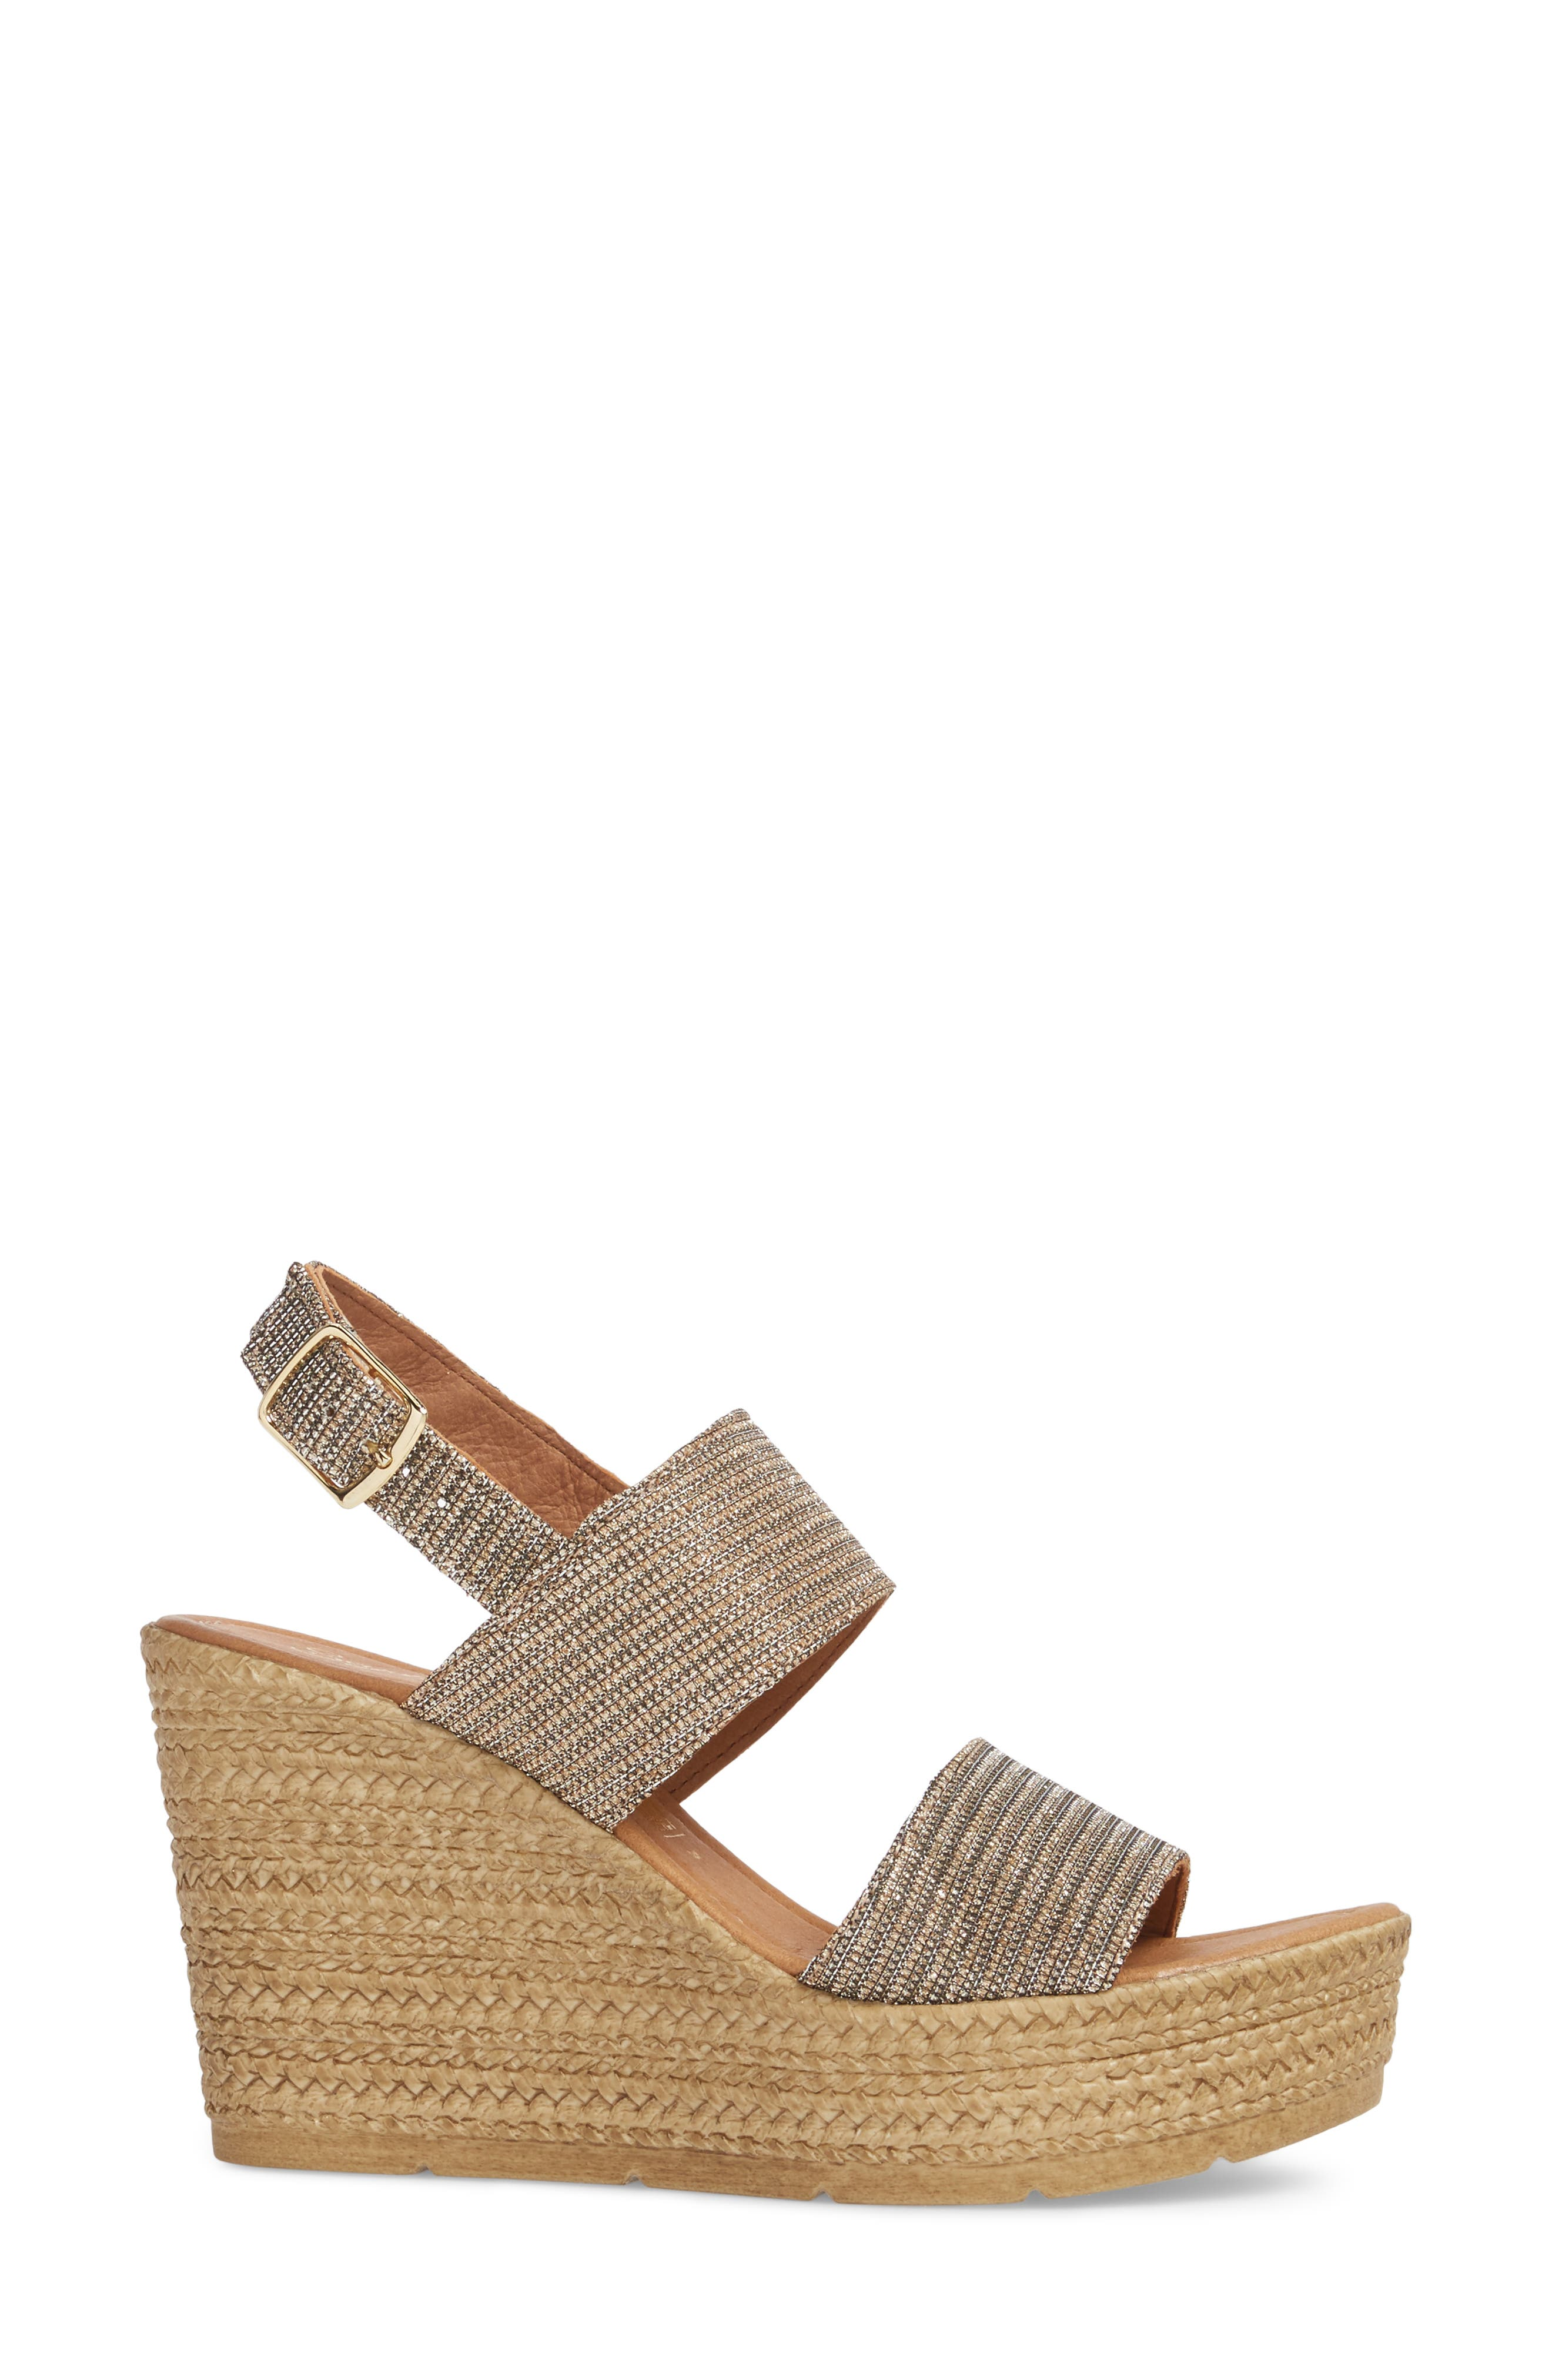 Downtime Wedge Sandal,                             Alternate thumbnail 3, color,                             220